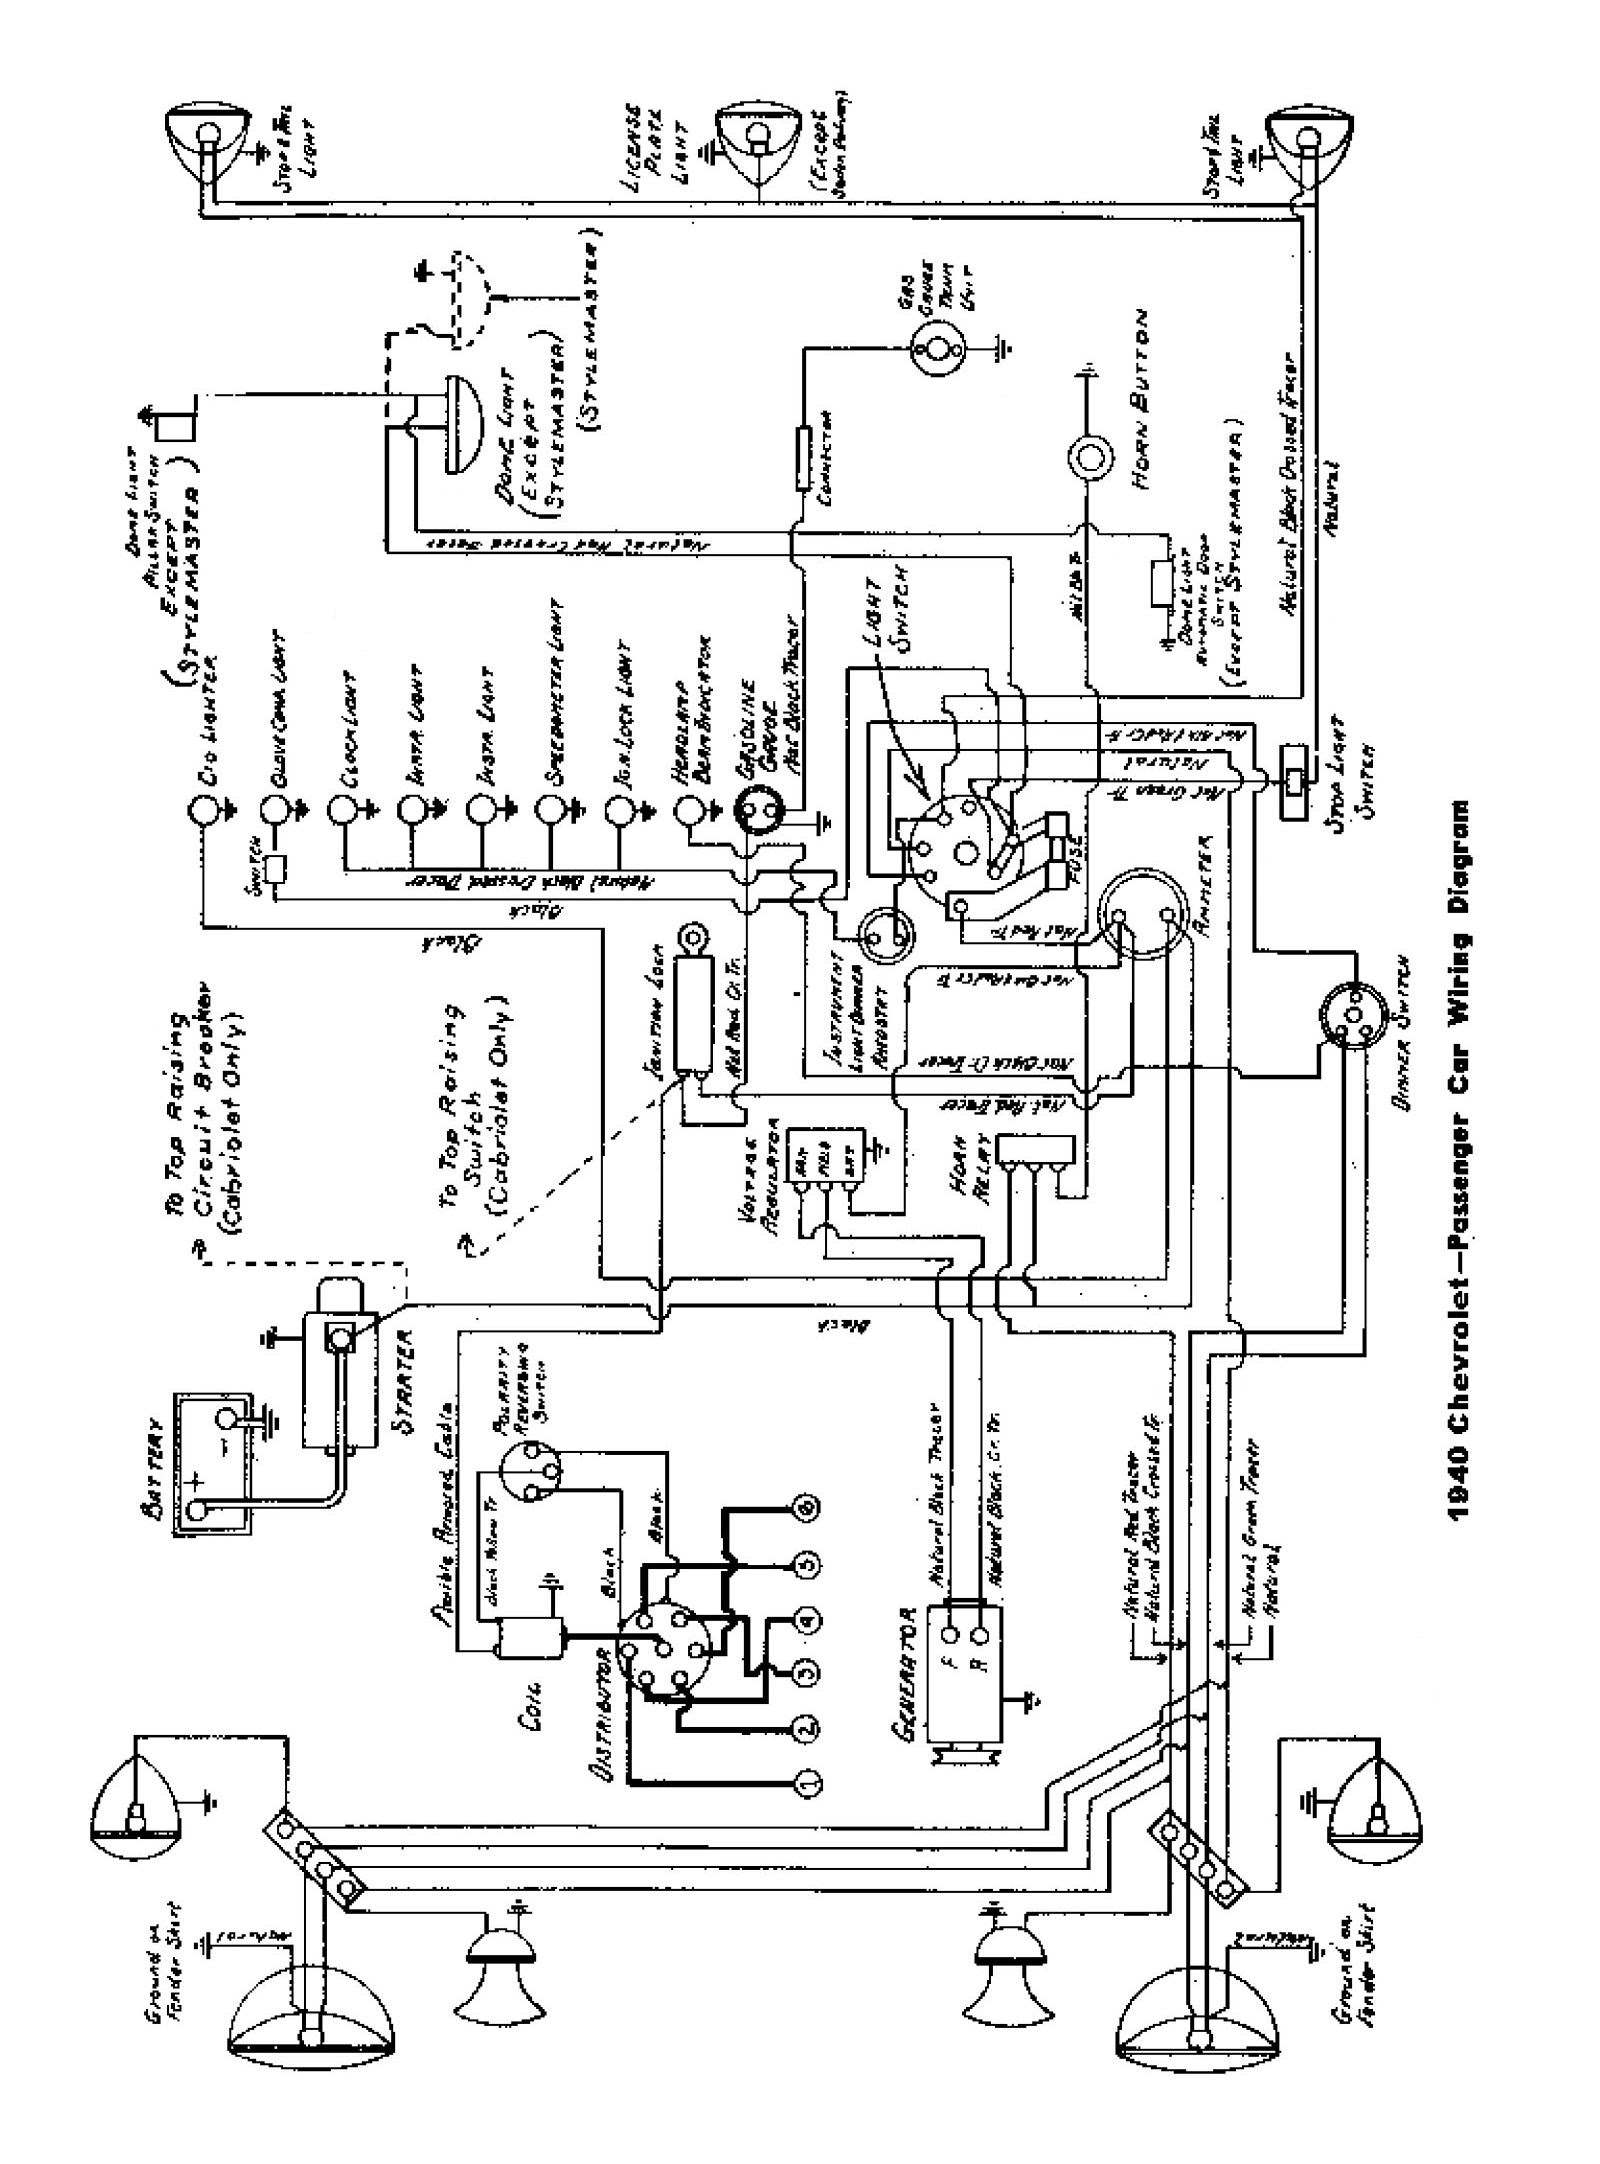 Wiring Diagram For 1952 Chevy Truck Wiring Diagram Theory Theory Zaafran It